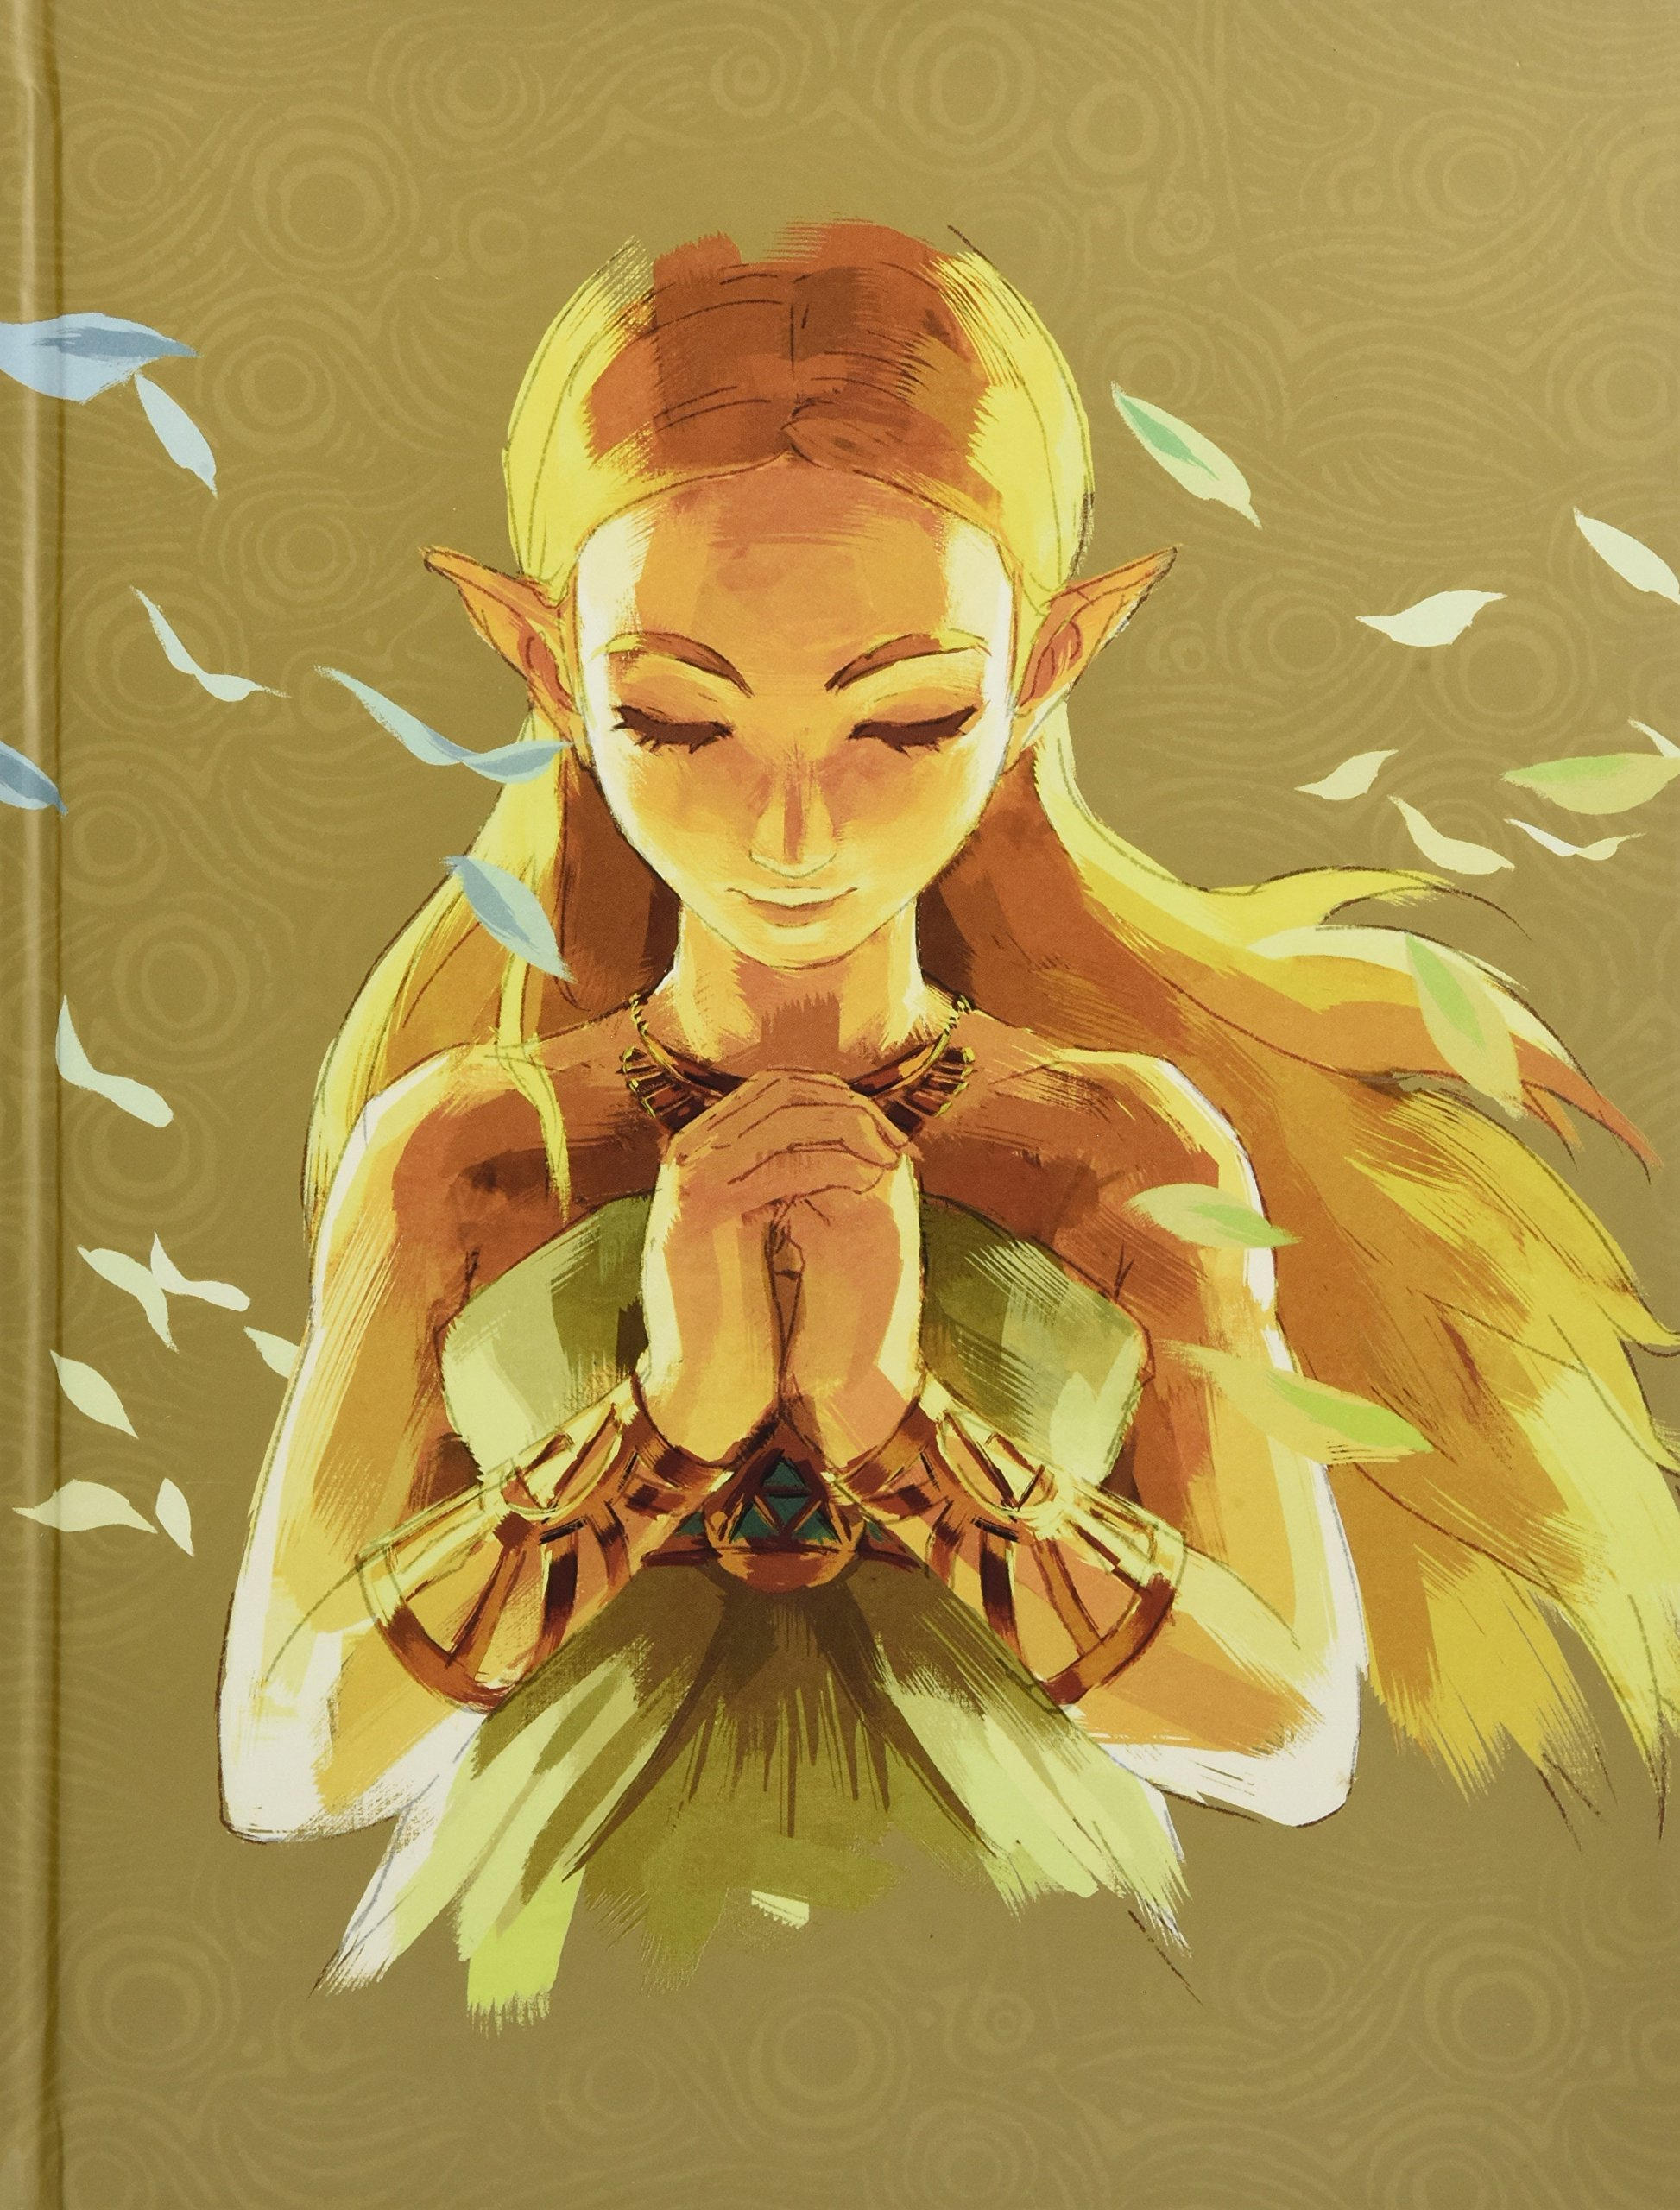 Legend of Zelda, The: Breath of the Wild - The Complete Official Guide - Expanded Edition